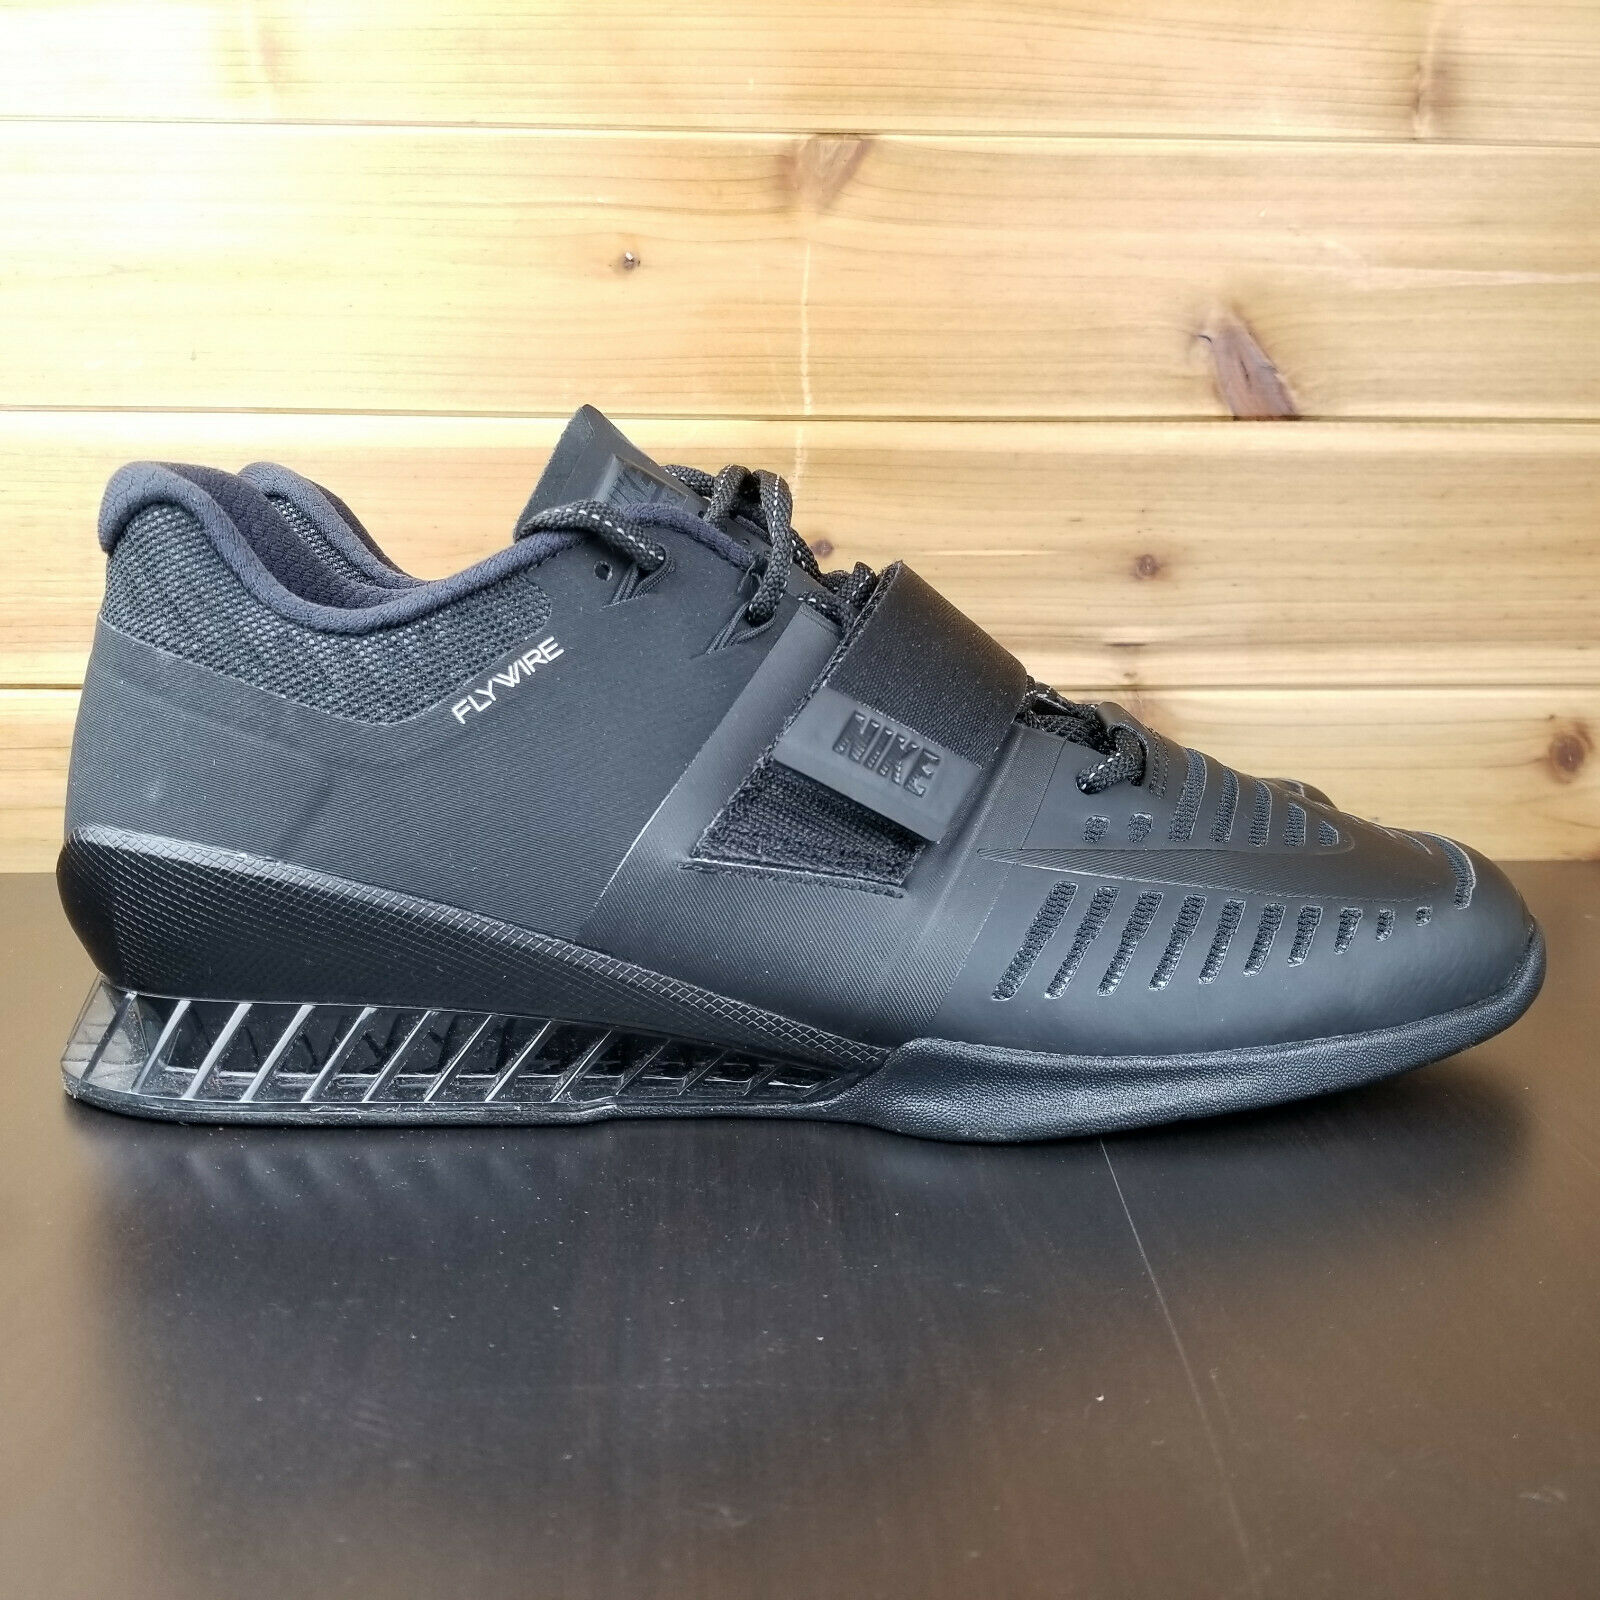 Nike Romaleos 3 Weightlifting Triple Black 852933-004 Men's Size 12.5 US